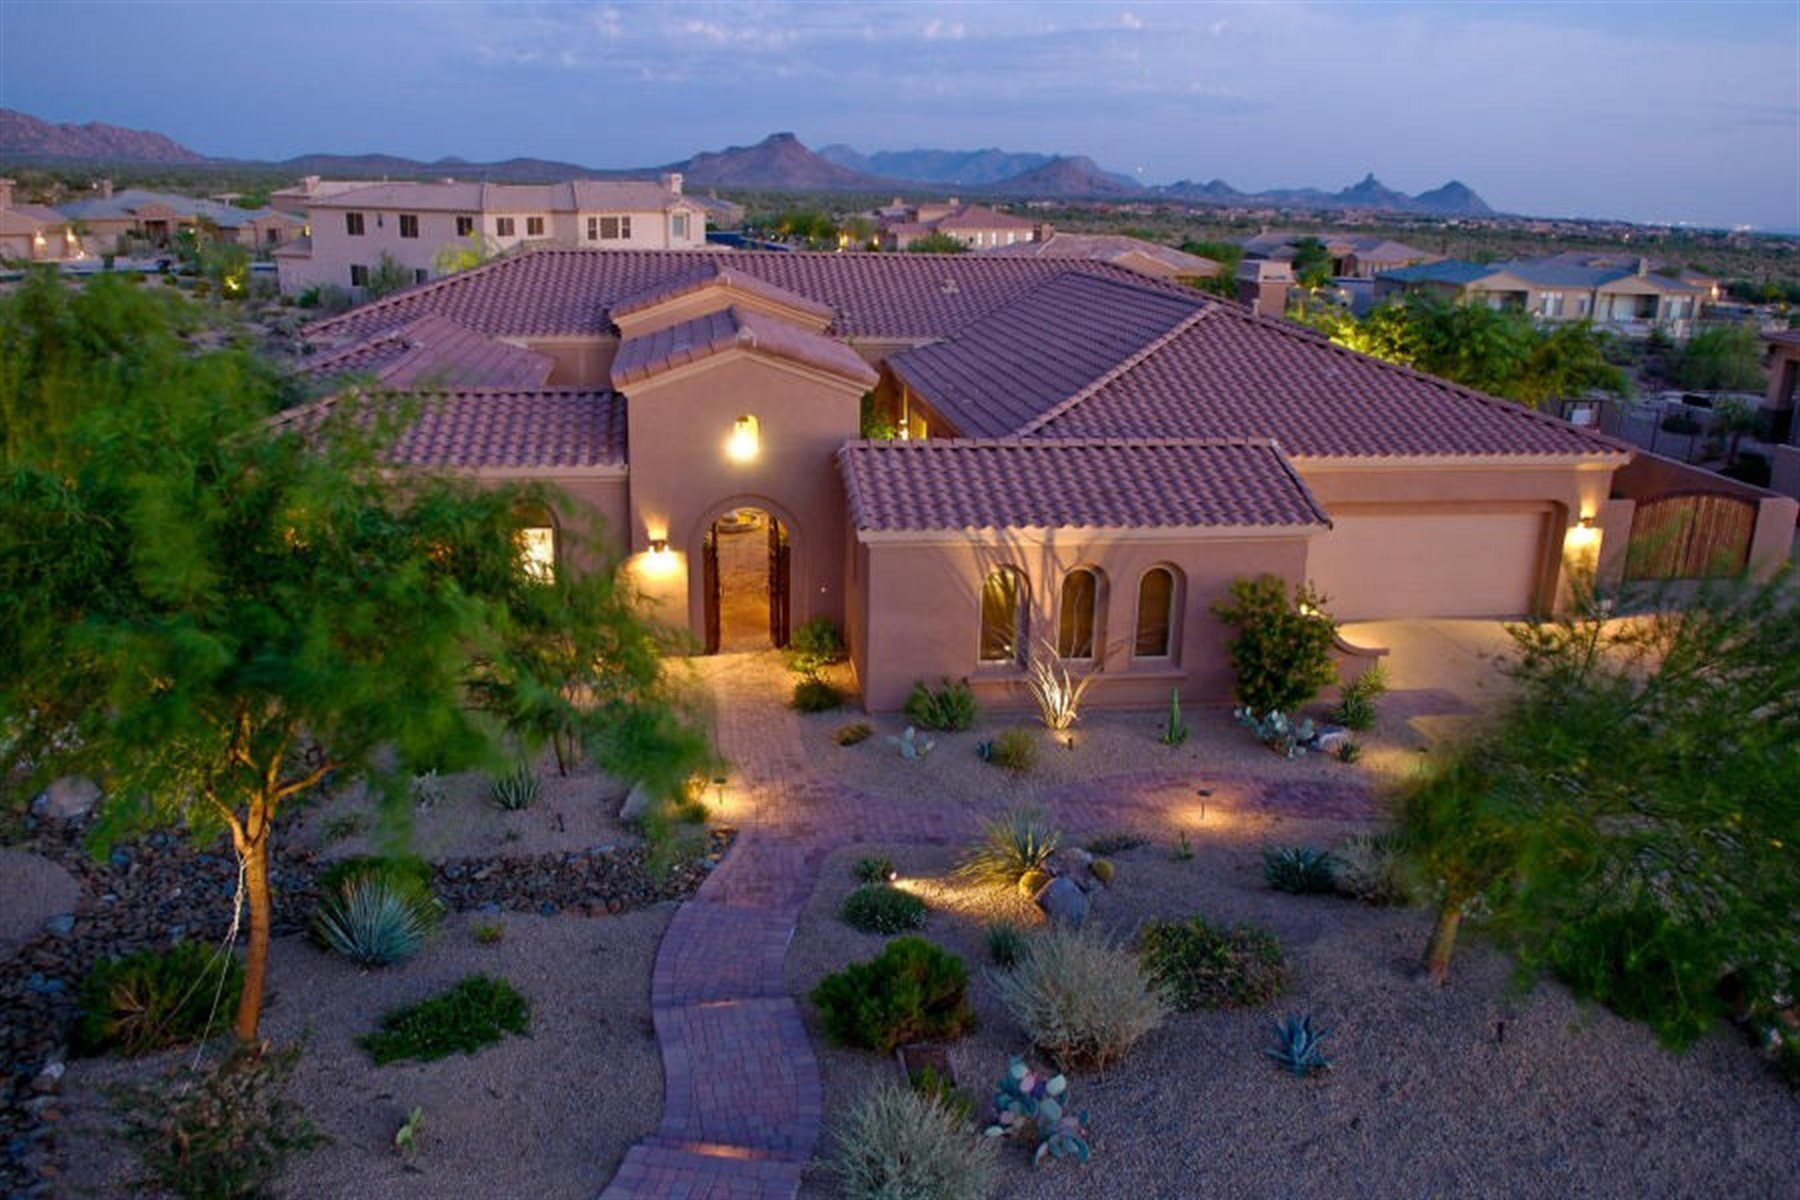 단독 가정 주택 용 매매 에 Stunning North Scottsdale Home With Exquisite Finishes 9795 E Granite Peak Trail Scottsdale, 아리조나 85262 미국